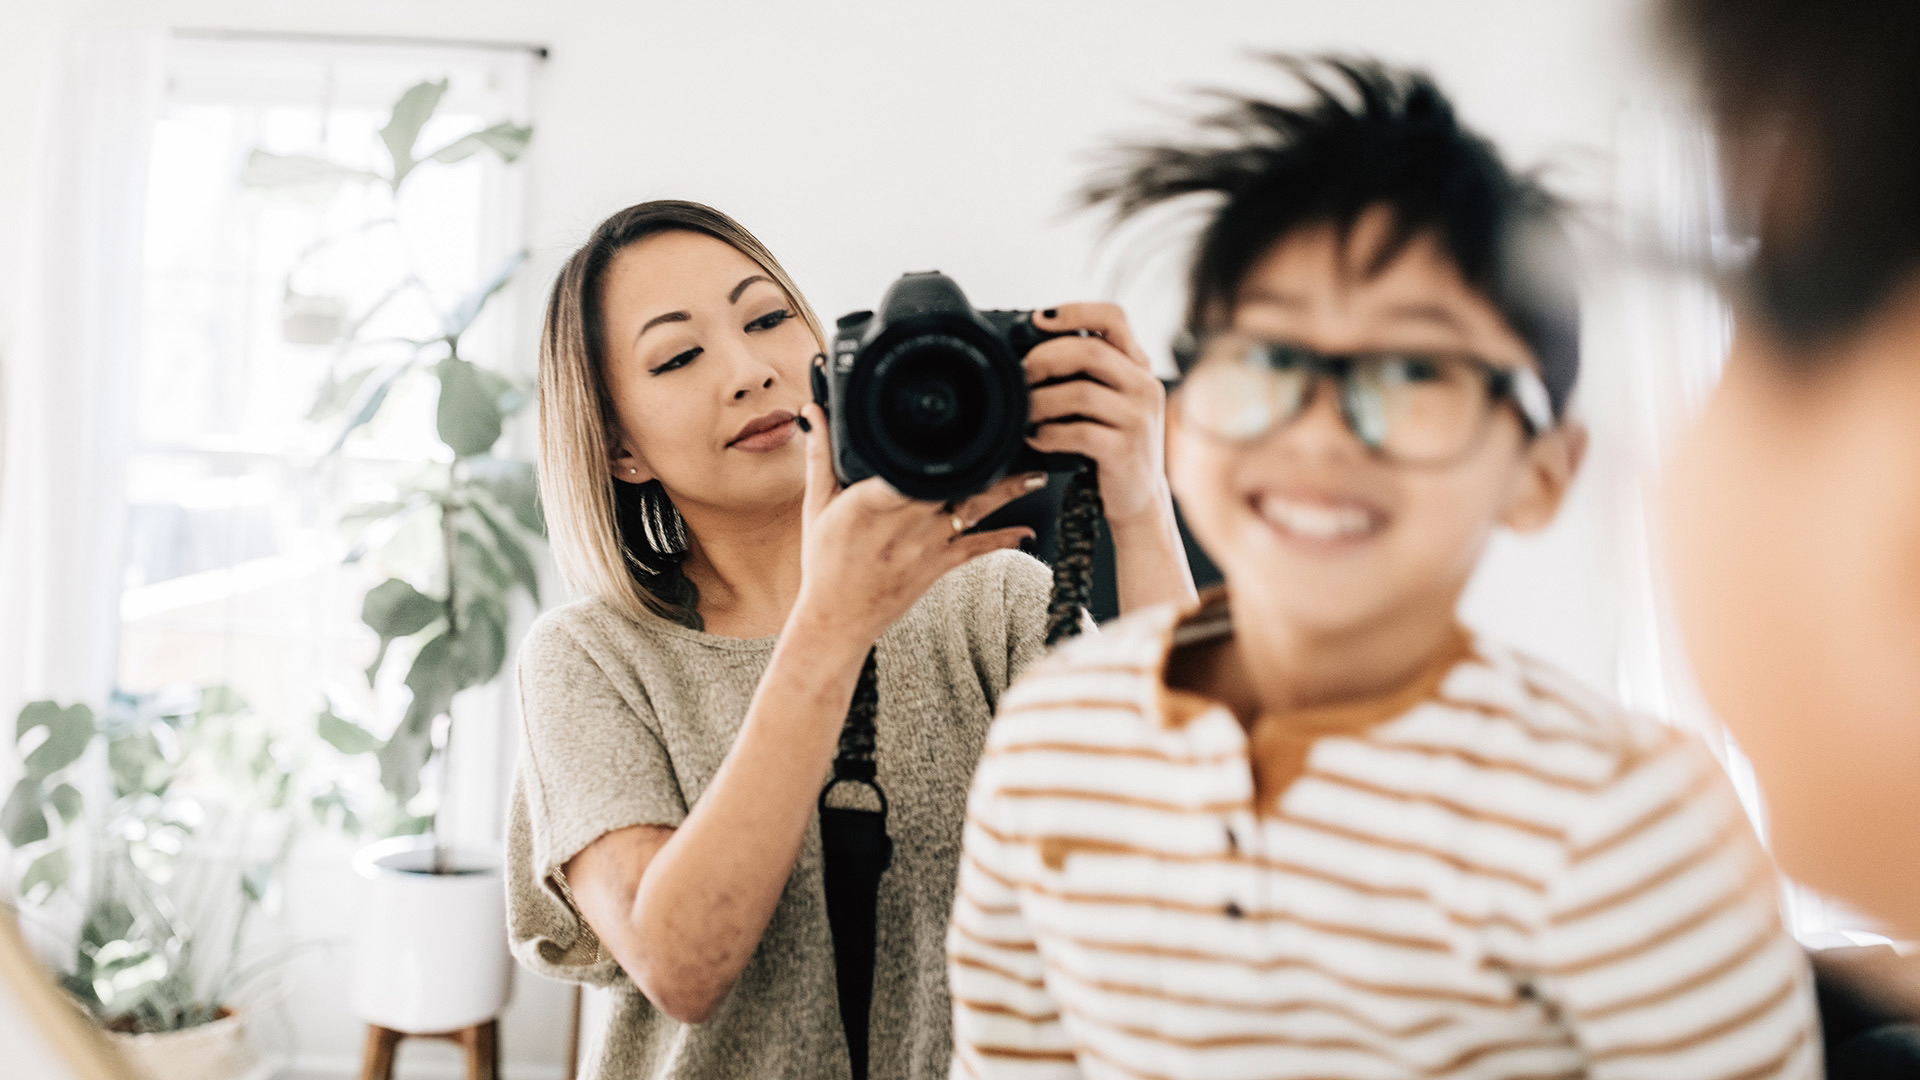 The five most common reasons for a photo to be declined from commercial Licensing